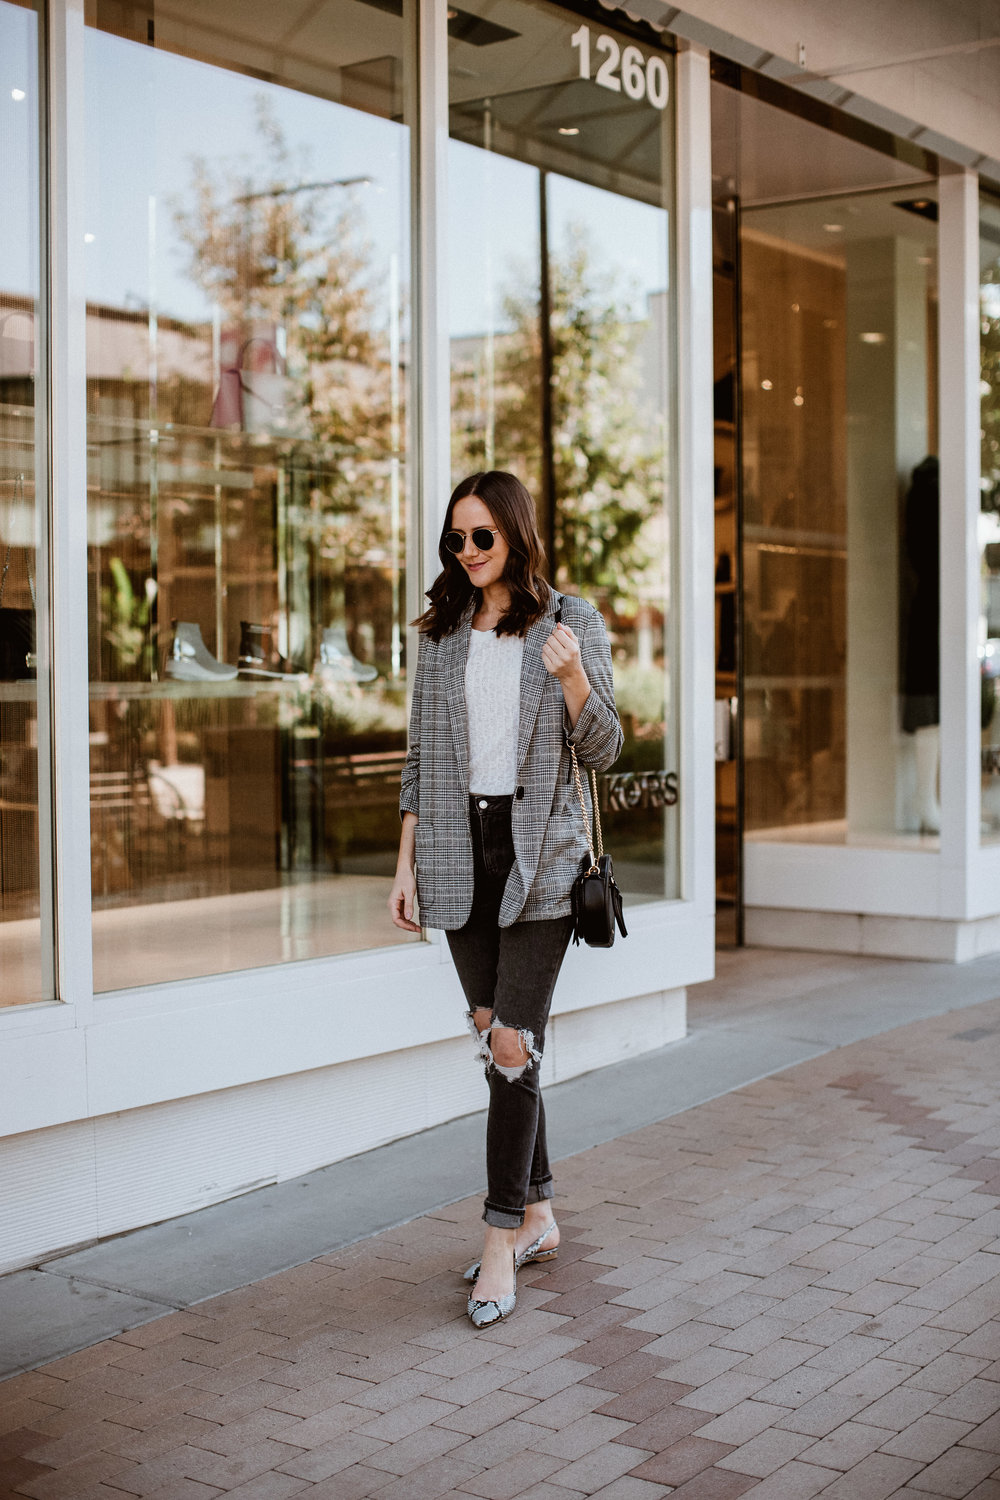 Shop the Look Below.  Anthropologie Sweater Tee  | Blazer in stock  HERE  and  HERE  |  Levi's Jeans  |  Shopbop Flats  |  Rebecca Minkoff Bag  |  Ray-Ban Sunglasses